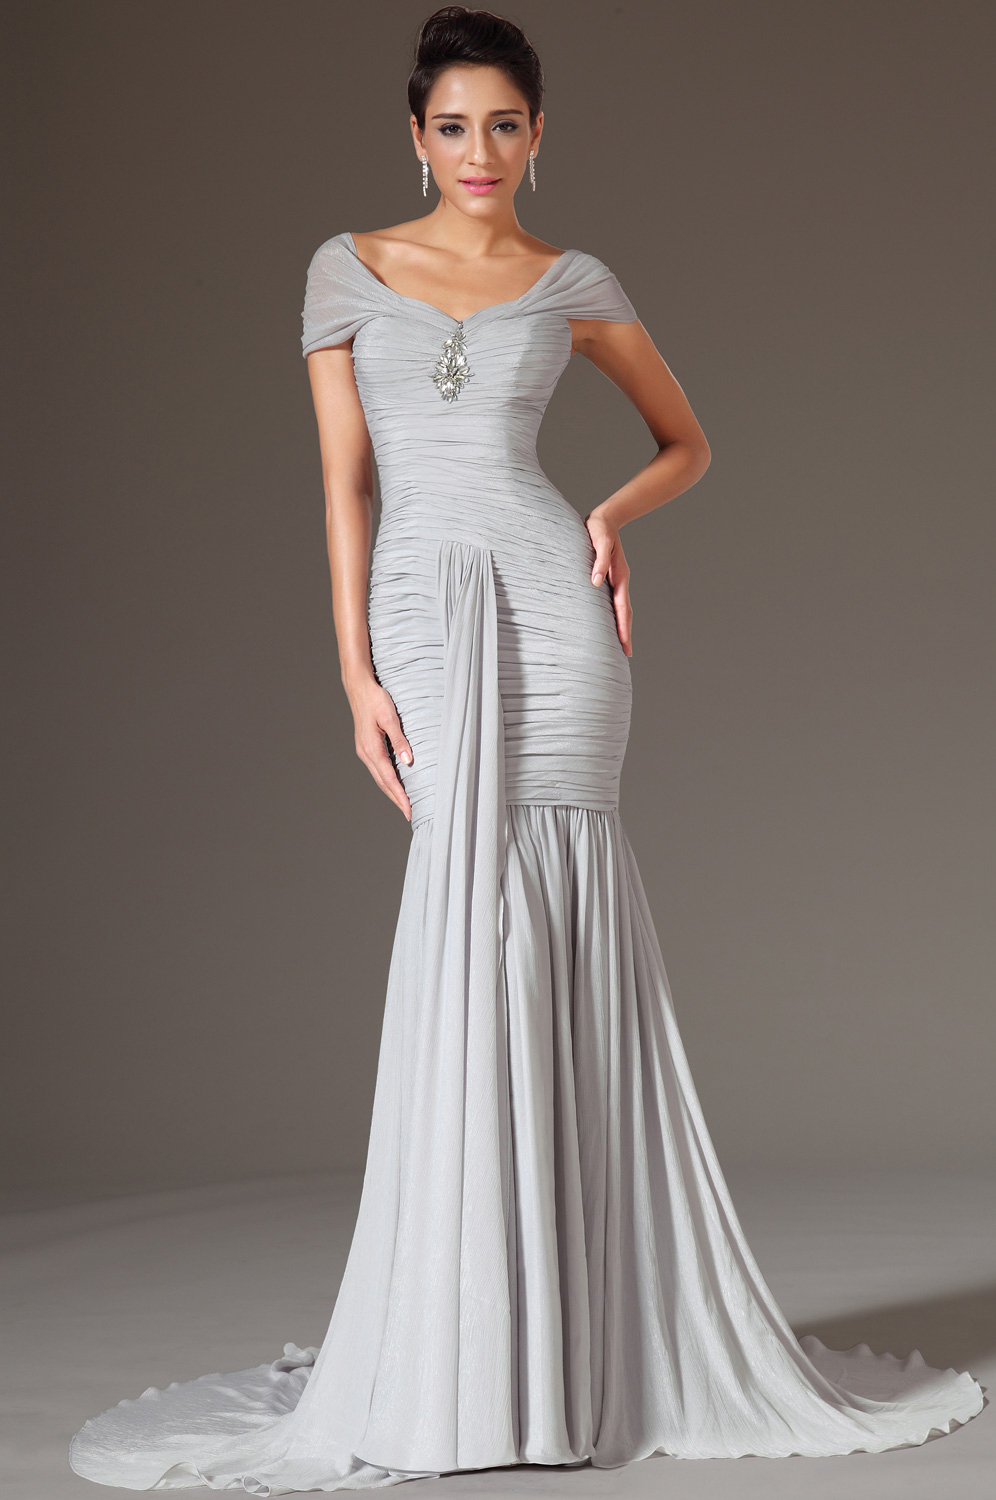 High Quality Stylish Evening Gowns-Buy Cheap Stylish Evening Gowns ...